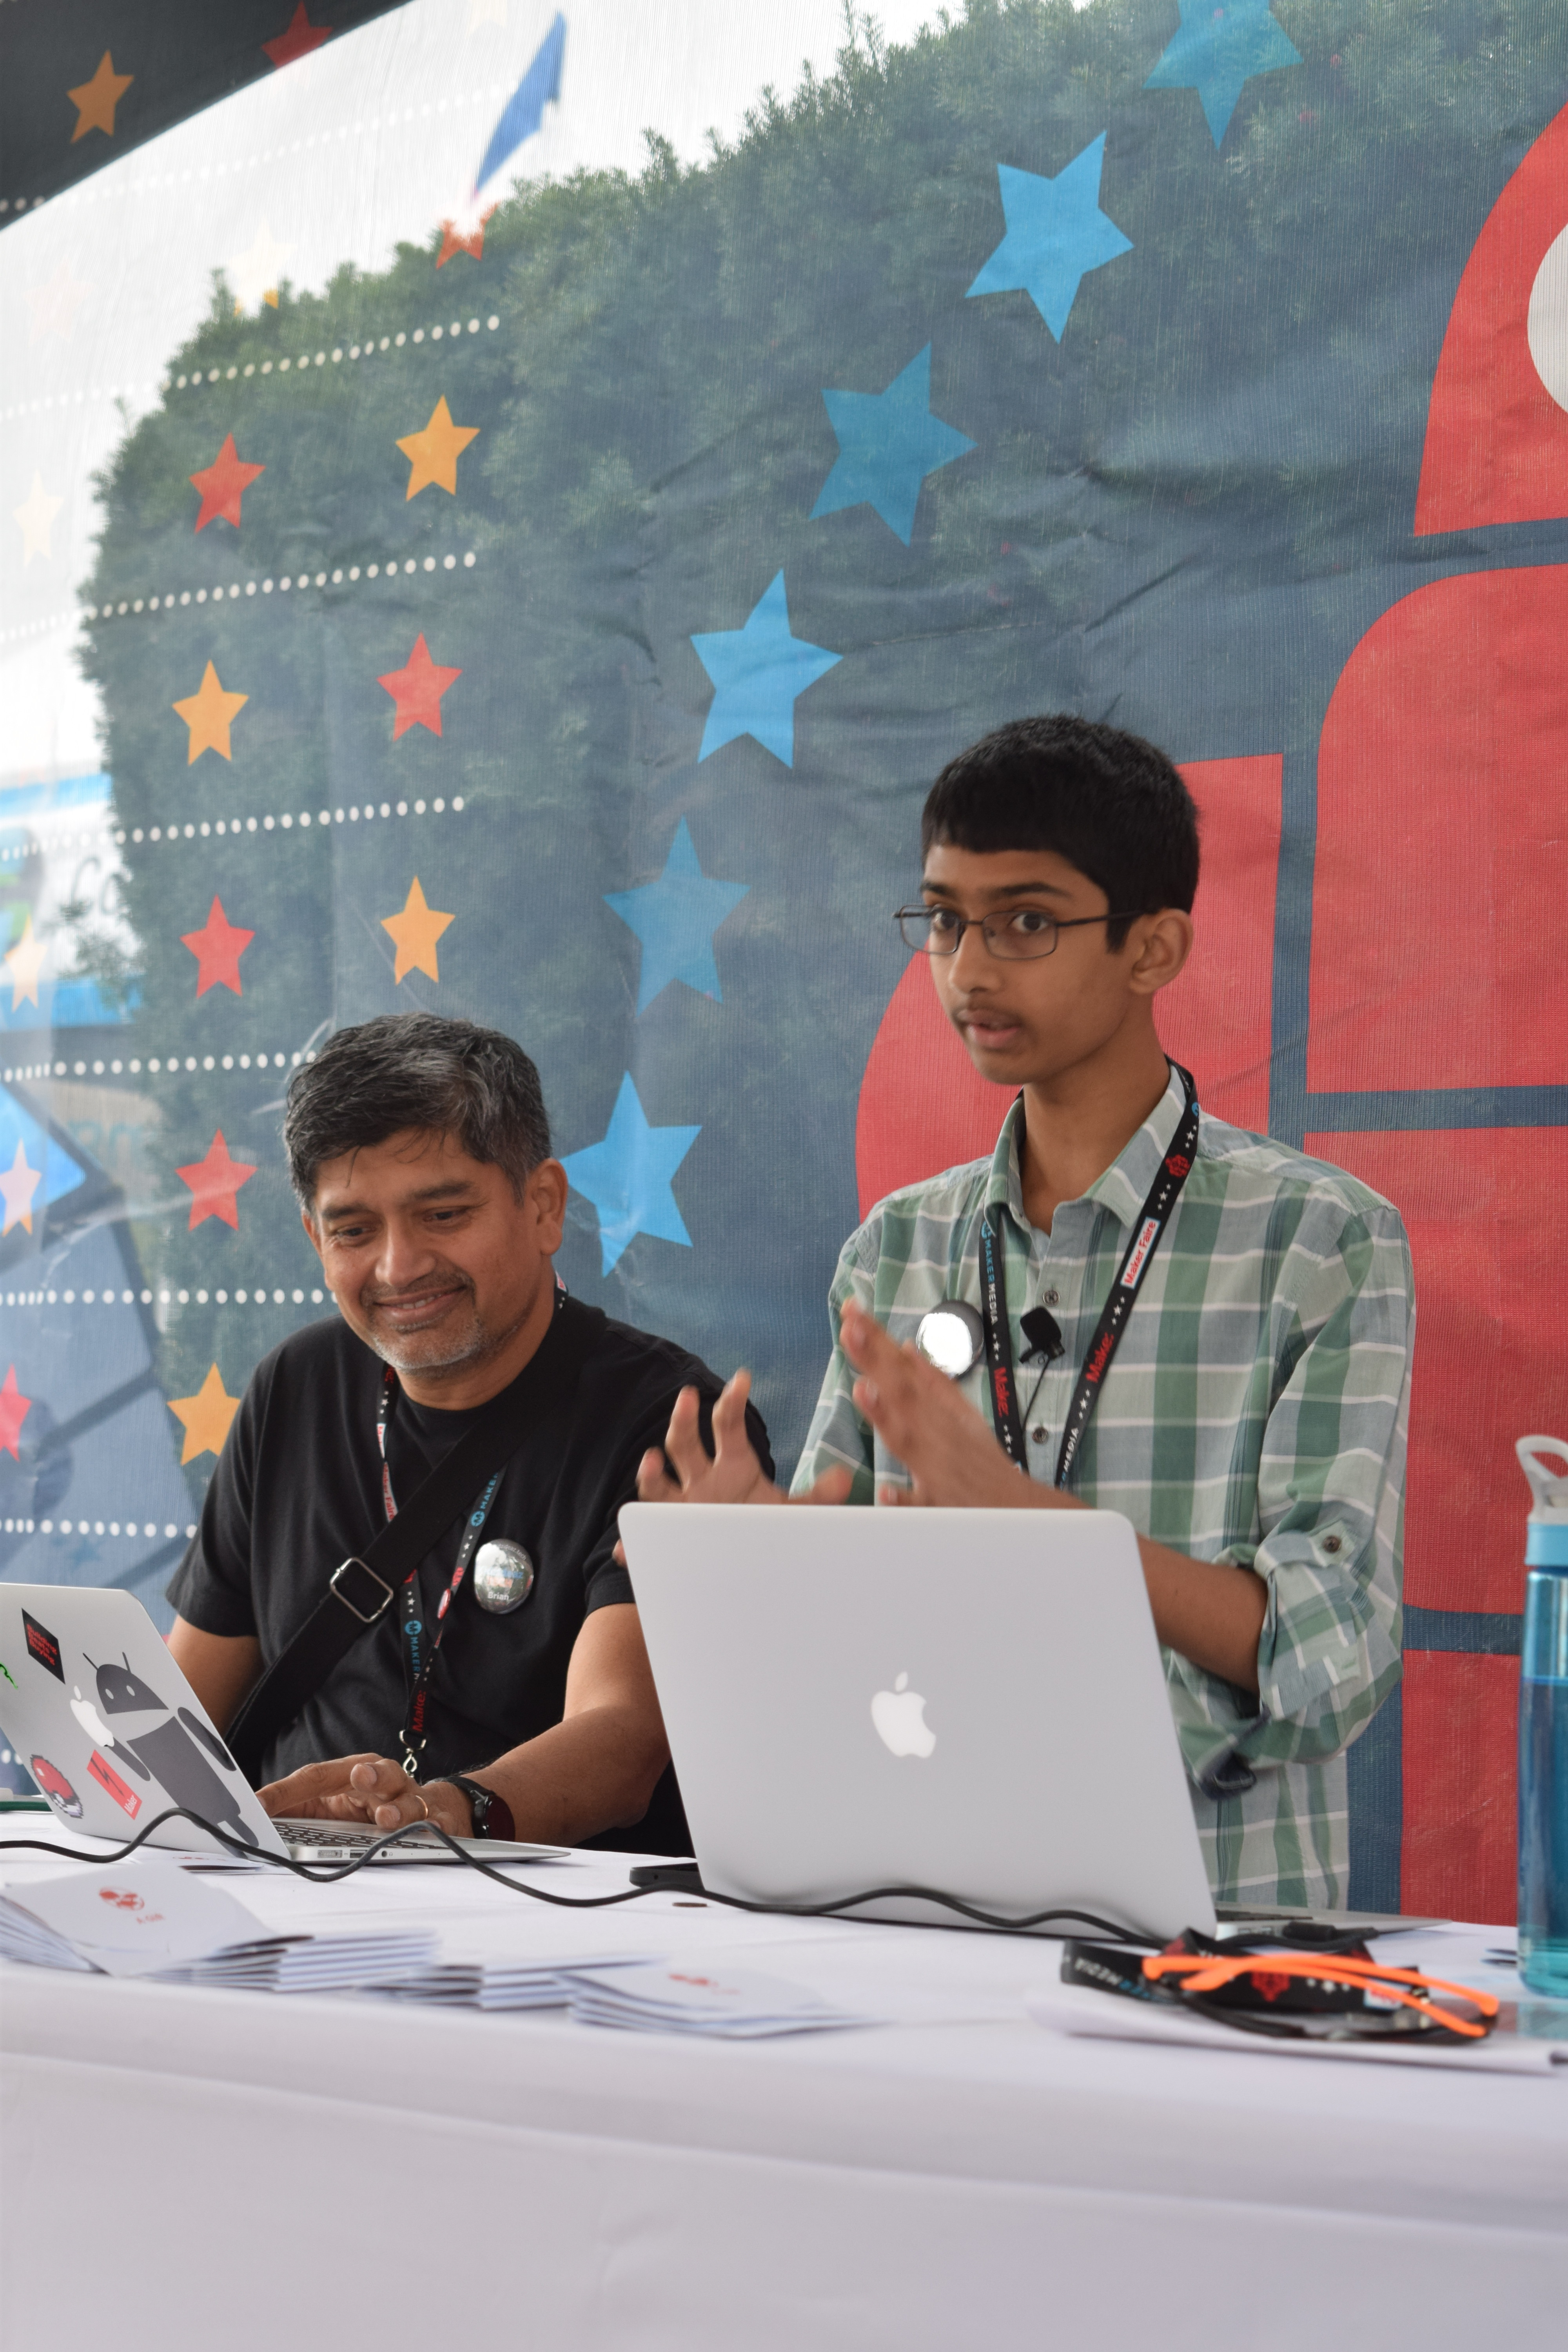 Nathaniel Dsouza shares his idea for kids to learn coding with assistance from his dad.